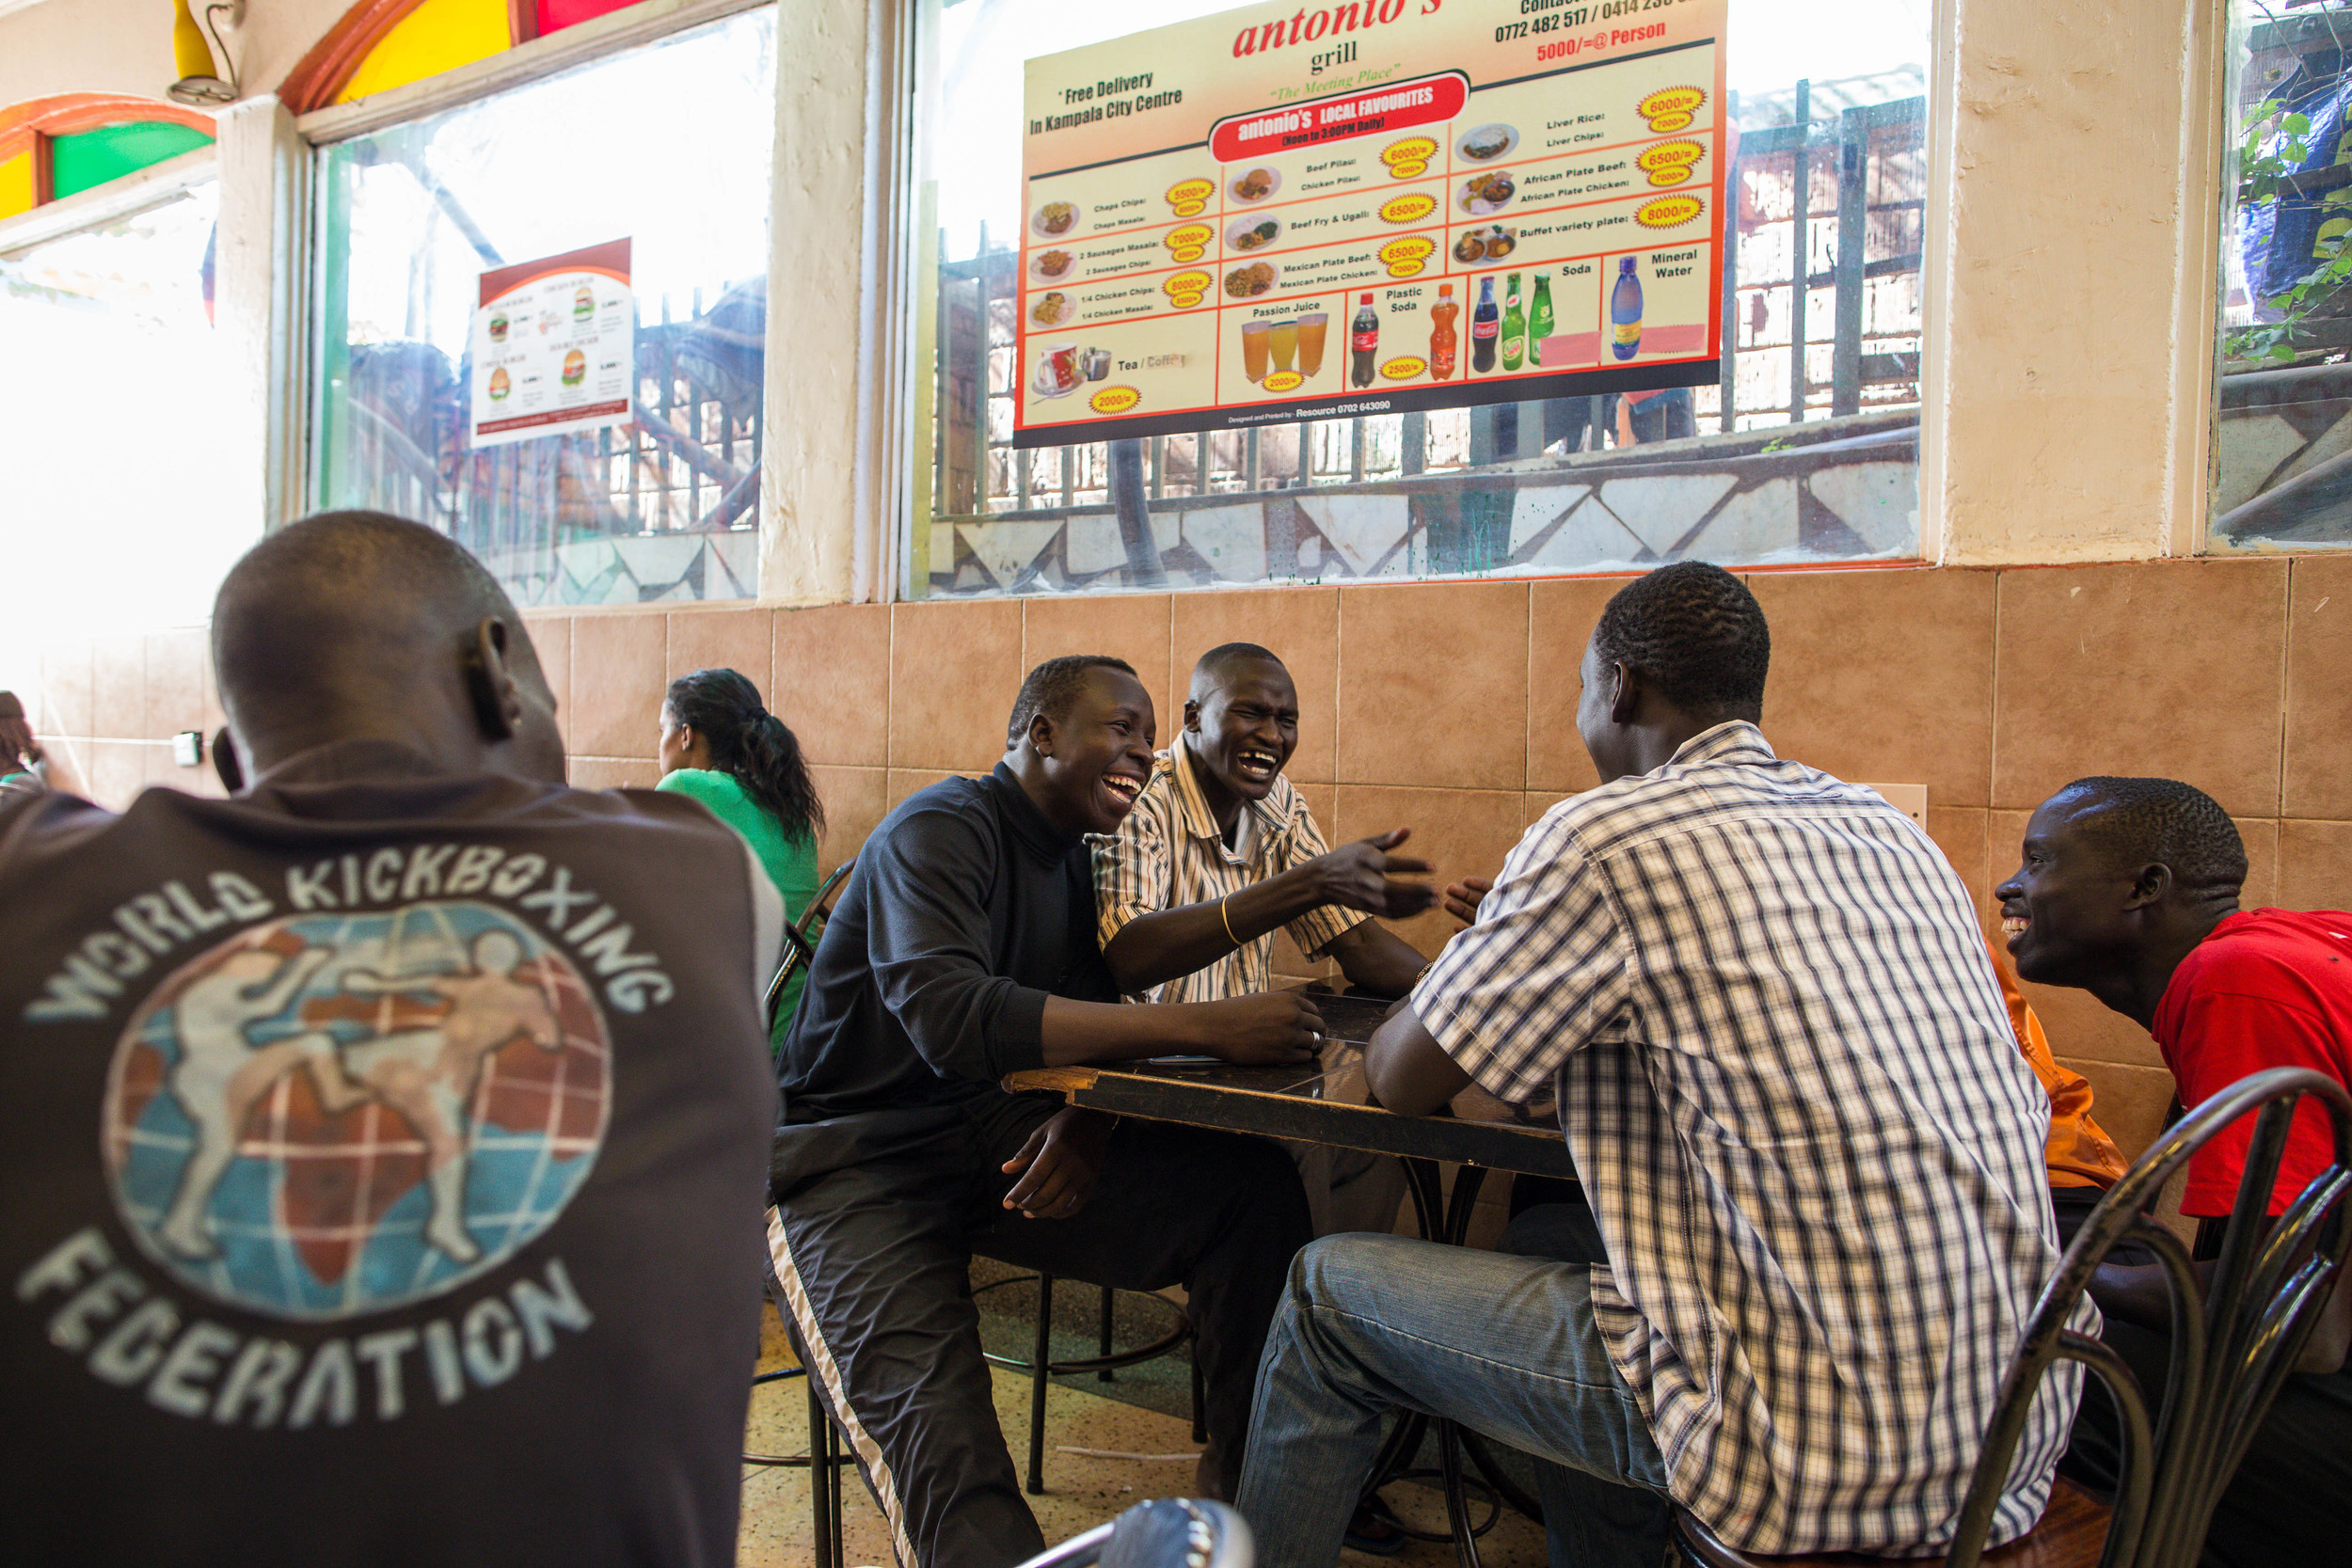 Team members laugh together after finishing lunch at a restaurant in Kampala. Aware that it would be a barrier to competition, Puro makes sure no team member has to pay for anything on the trip.